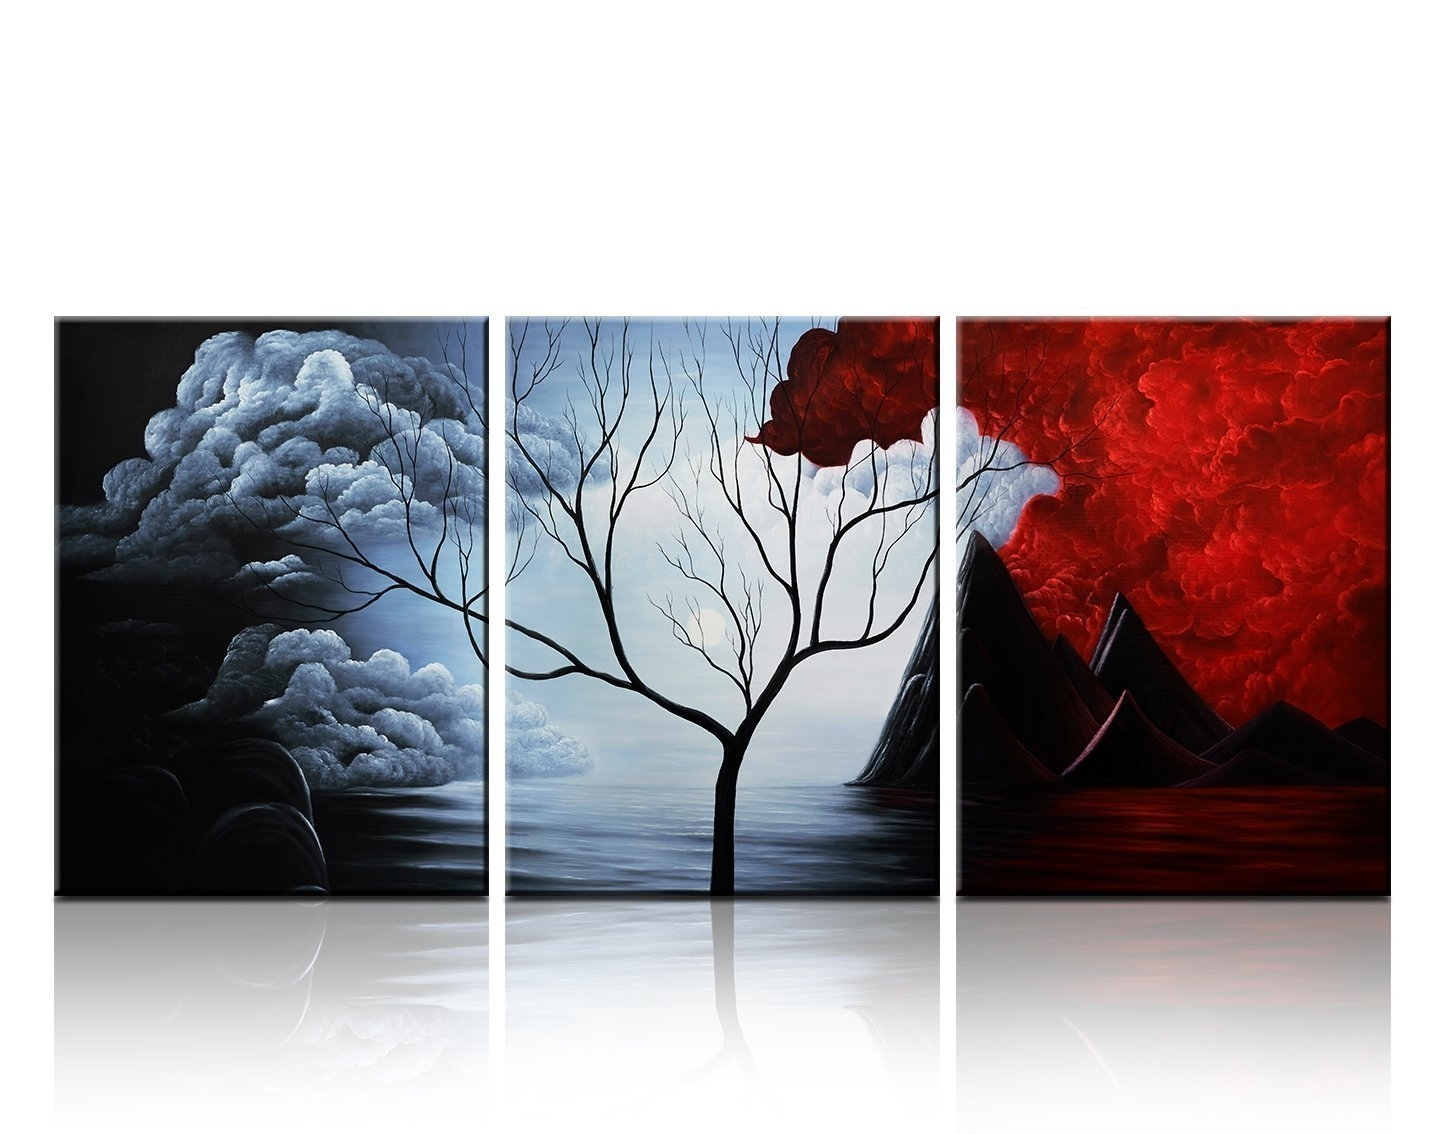 Santin Art  Modern Abstract Painting The Cloud Tree High Q. Wall Within Most Popular Modern Abstract Painting Wall Art (Gallery 12 of 20)